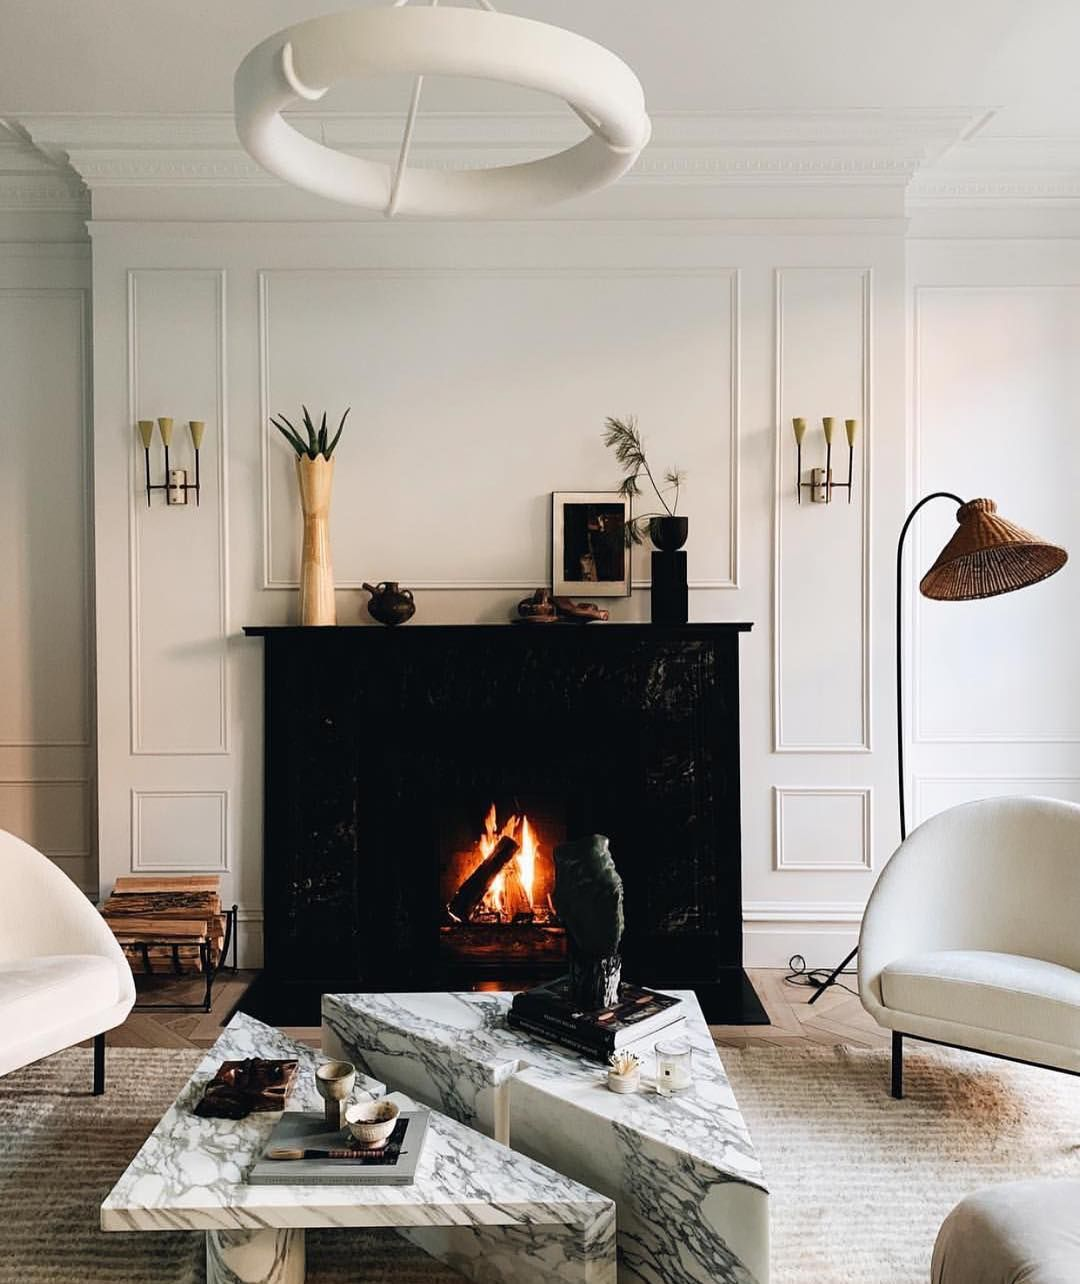 Marble Coffee Table Colinking Design By Eyeswoon Home Marble Tables Design Fireplace Built Ins [ 1284 x 1080 Pixel ]